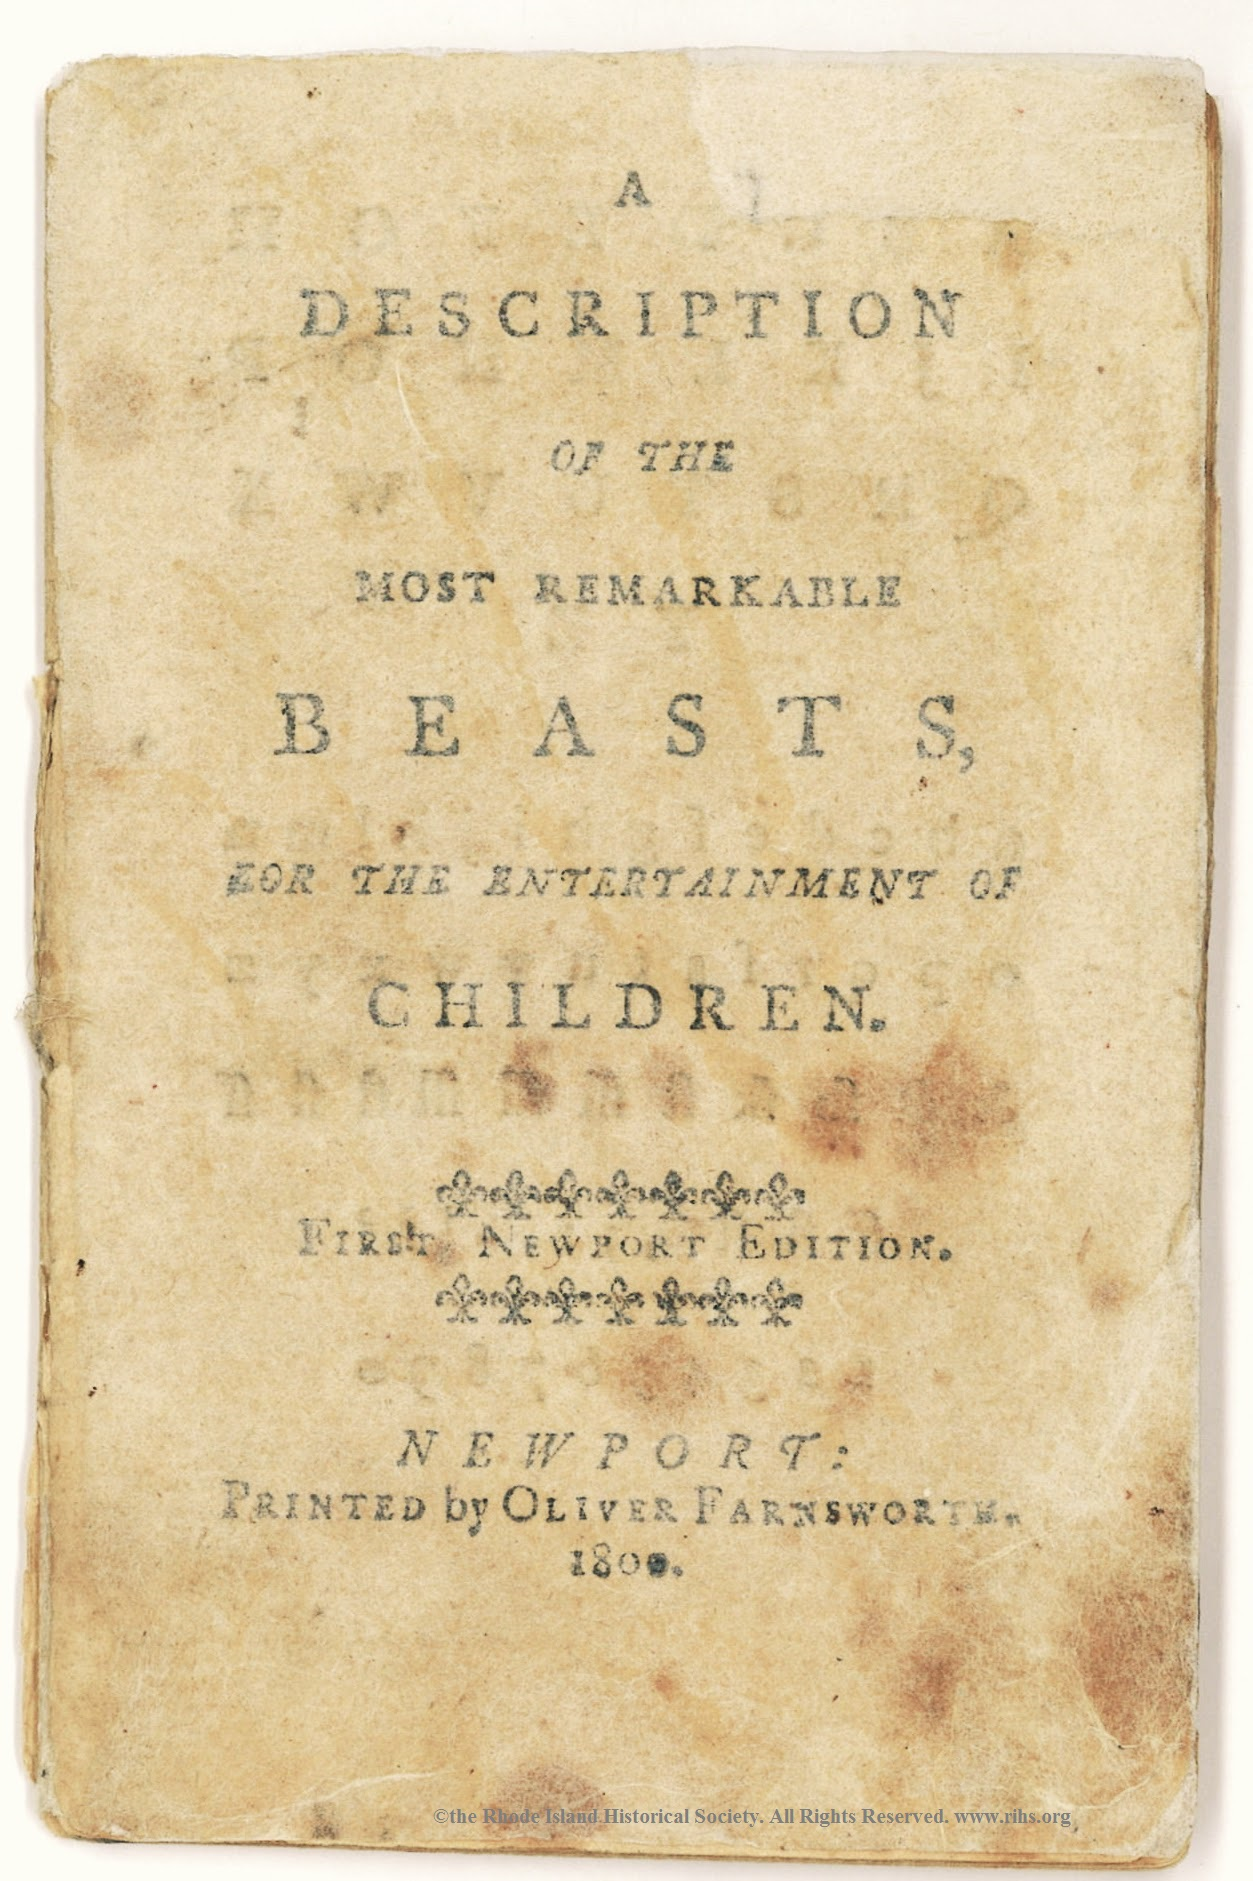 A Description of the Most Remarkable Beasts, for the Entertainment of Children. First Newport Edition. Newport, [R.I.]. Oliver Farnsworth, 1800.